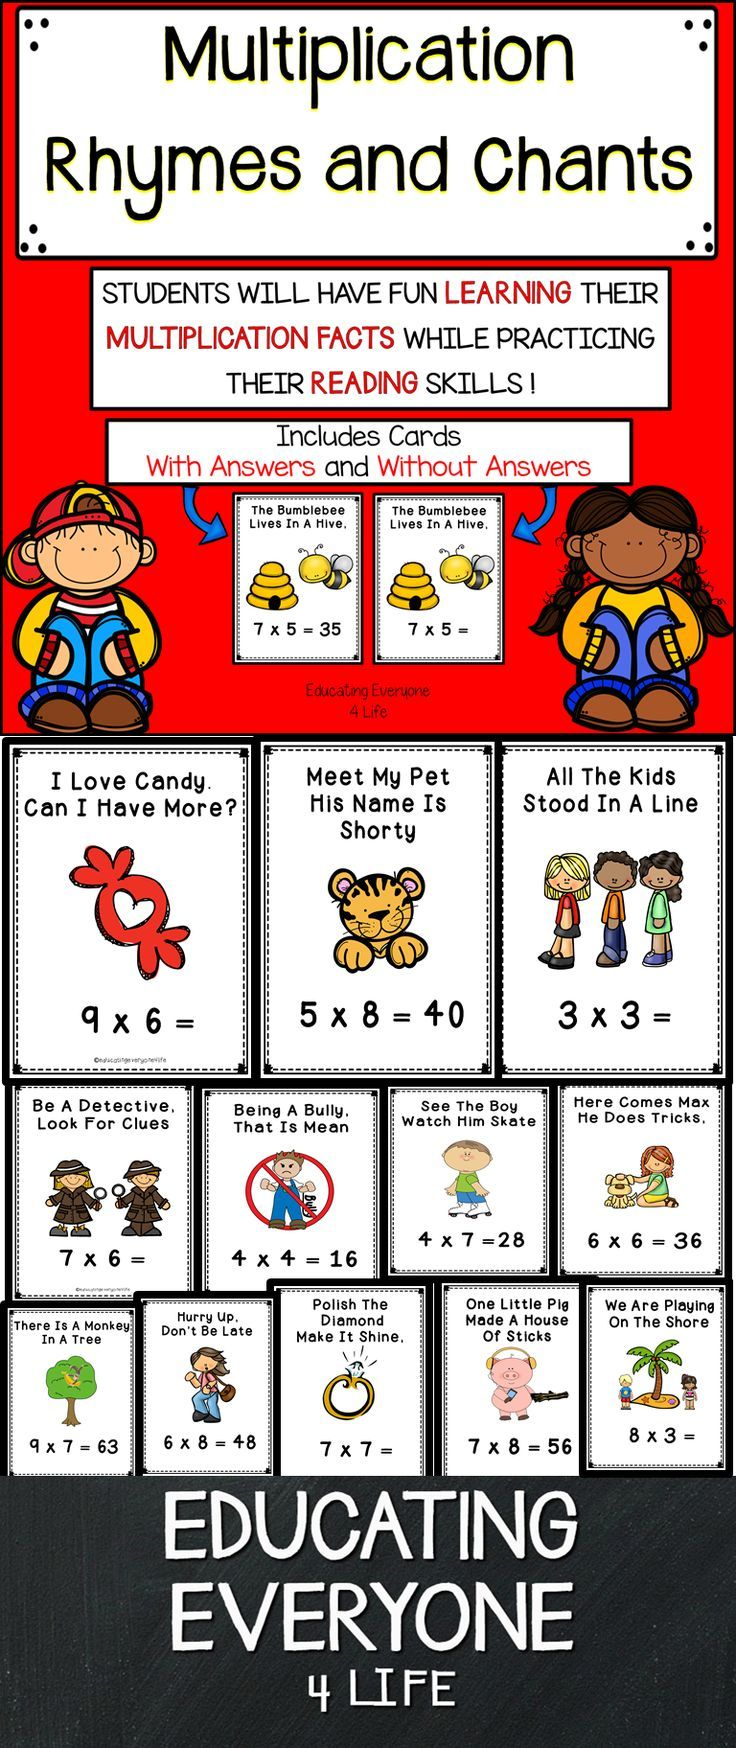 Are you looking for a way to help children master their multiplication facts? This set of multiplication rhymes and chants is a great way to help improve fact recall. This is also a great resource to integrate reading into the math curriculum. #math